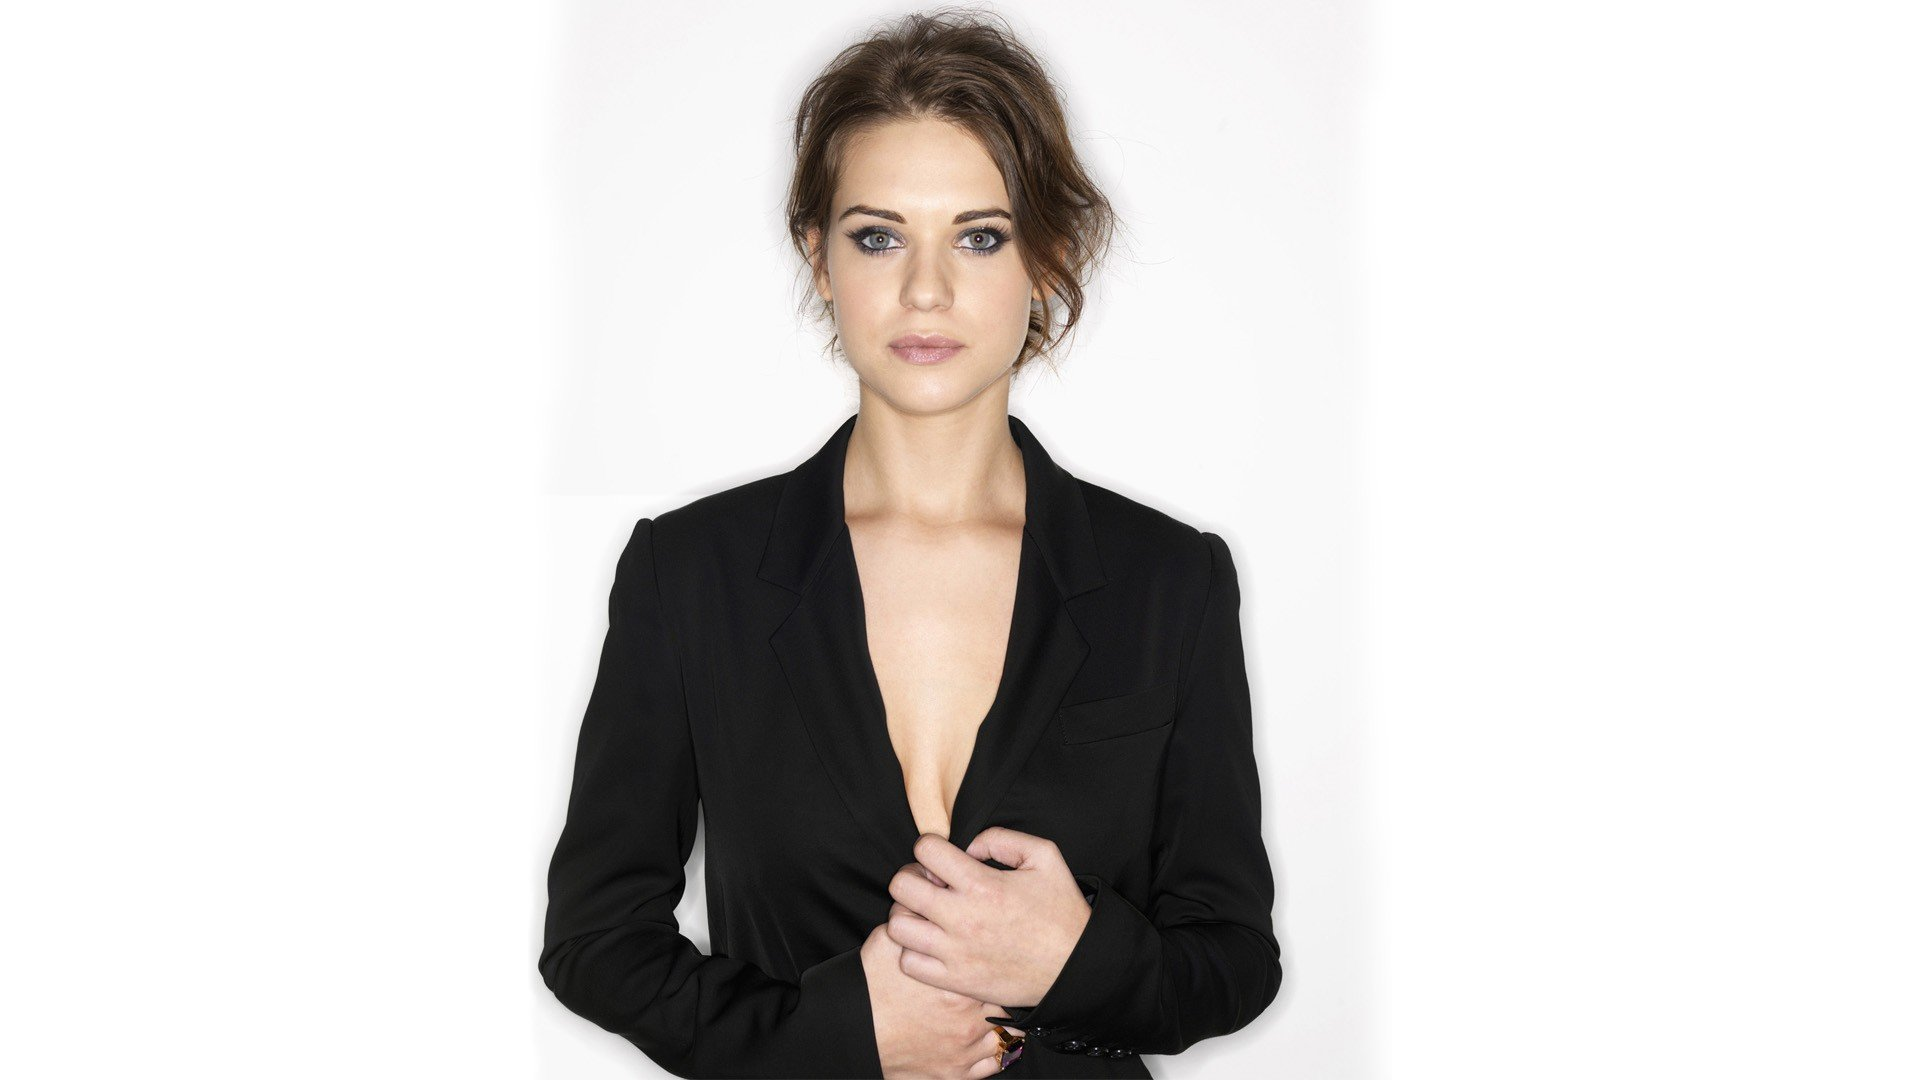 Download 1080p Lyndsy Fonseca PC background ID:246194 for free